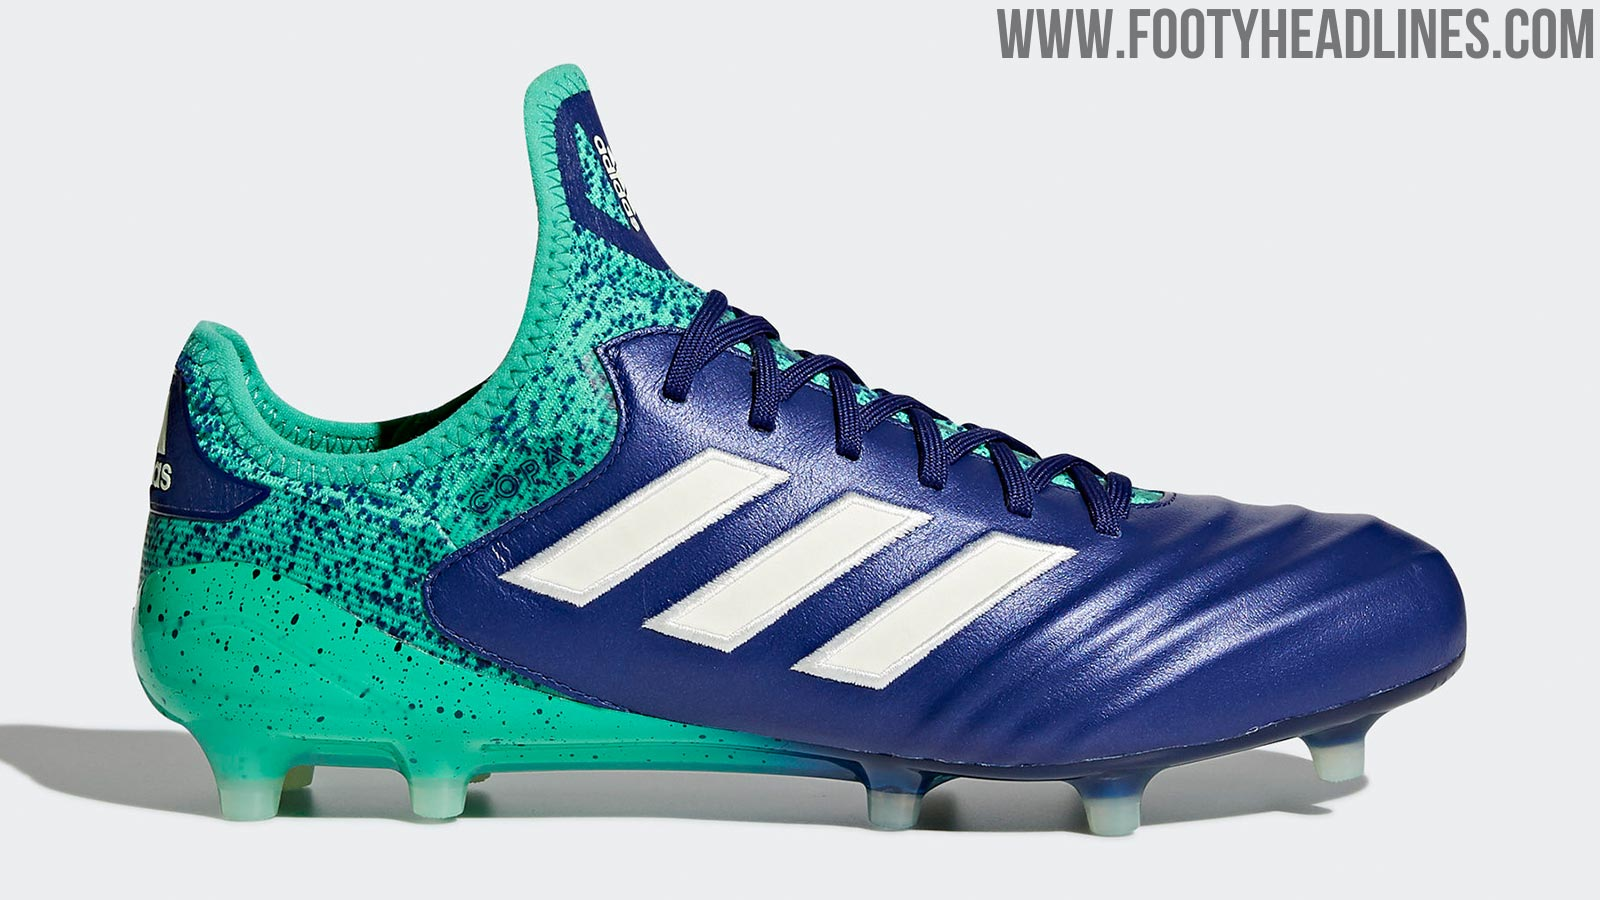 promo code 85383 9bcf8 This is the Adidas Copa 18 Deadly Strike football boot edition.